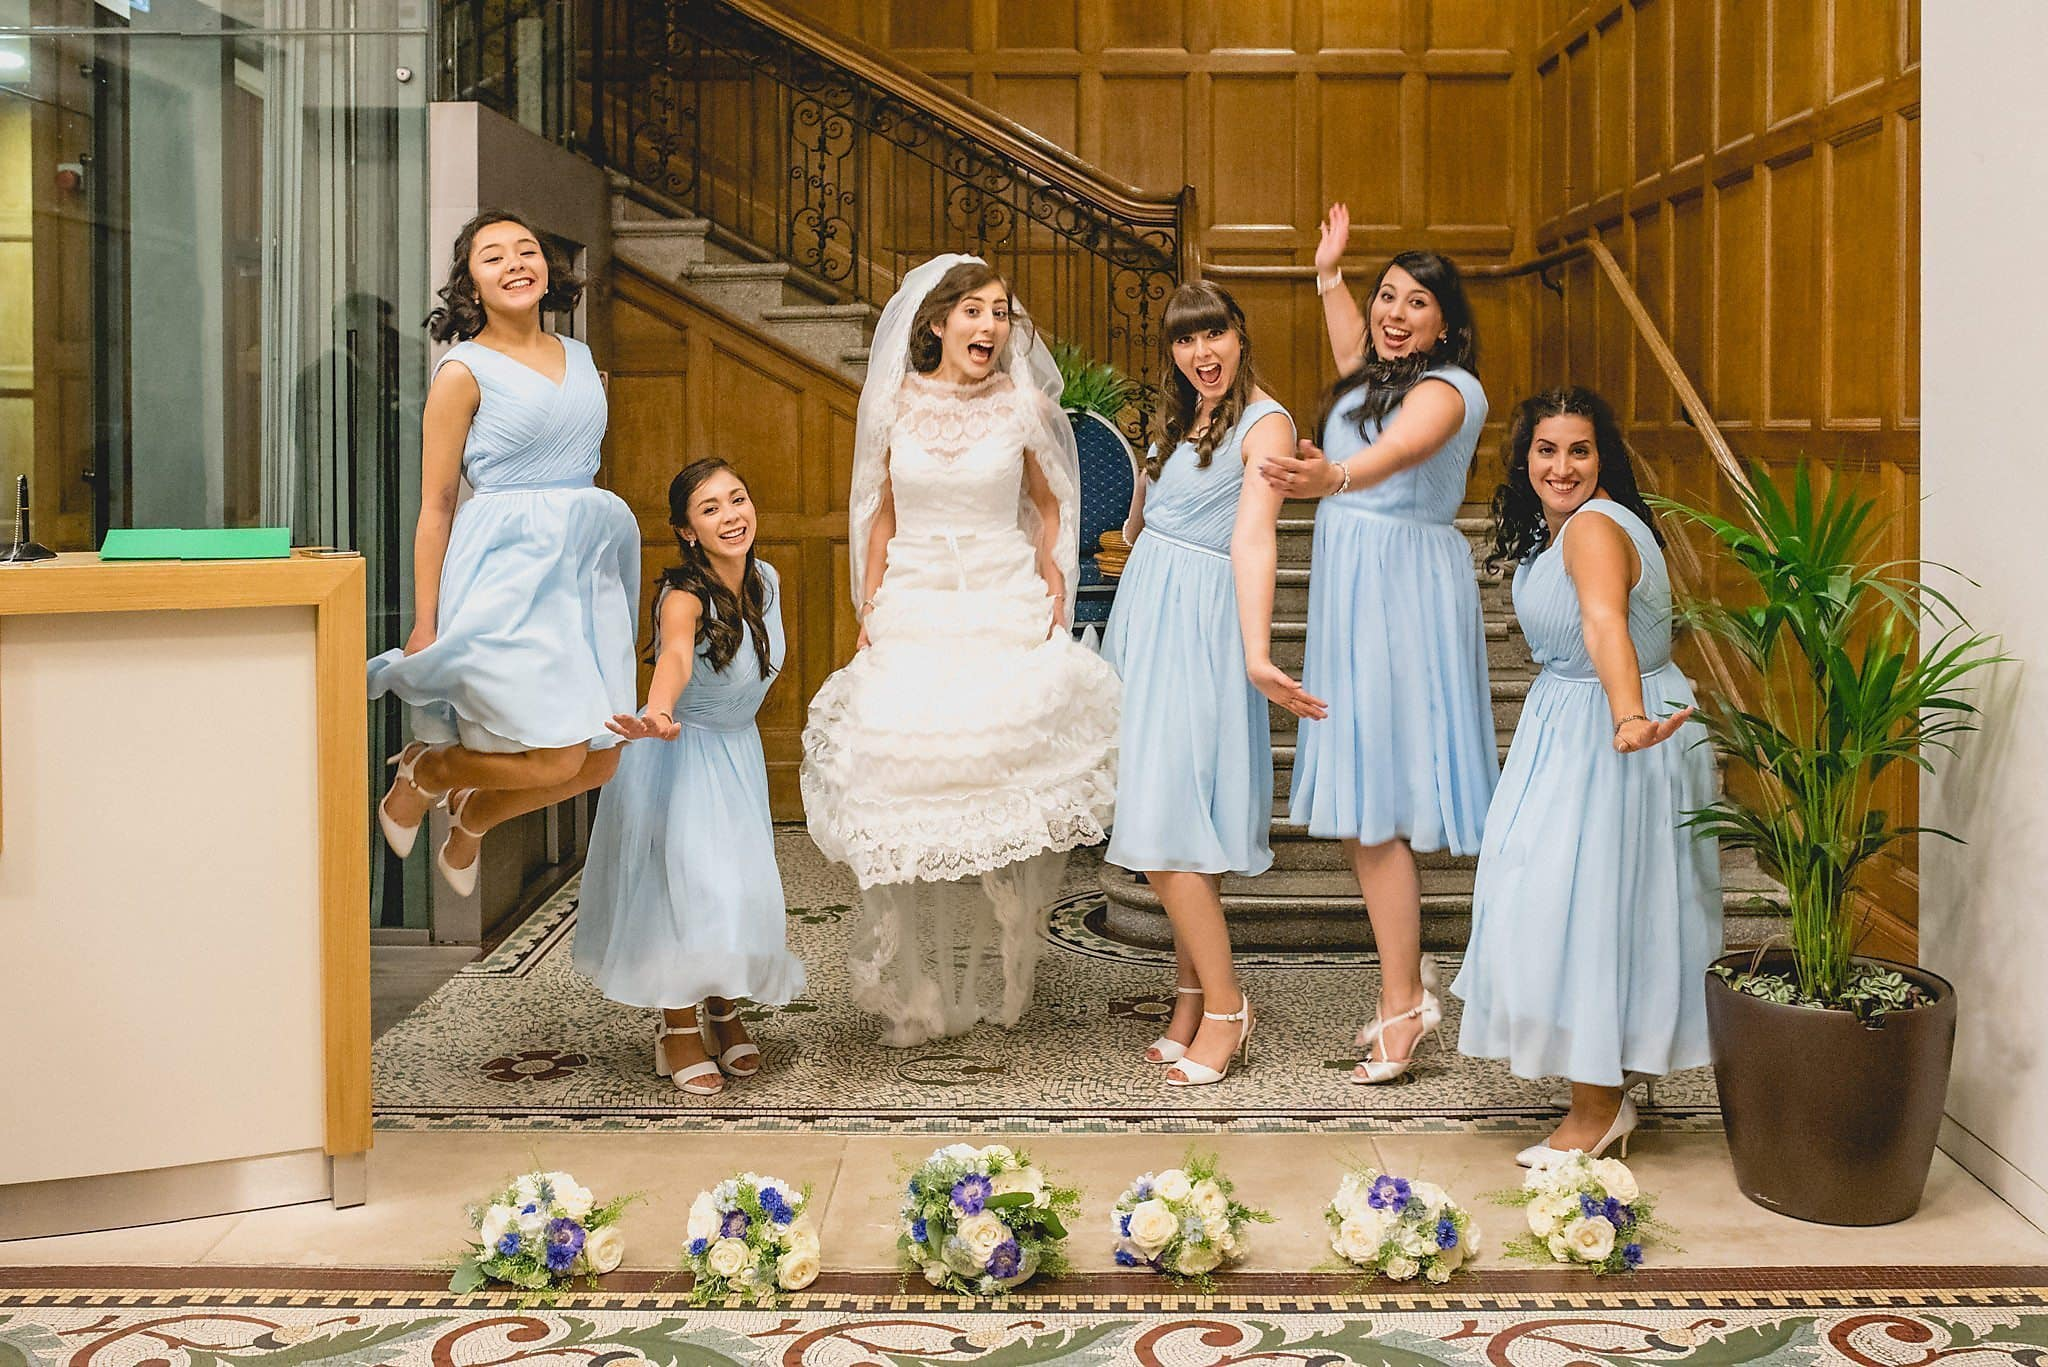 Bride jumping with her bridesmaids at the Royal Horticultural Halls staircase | Start Wedding Planning top tips